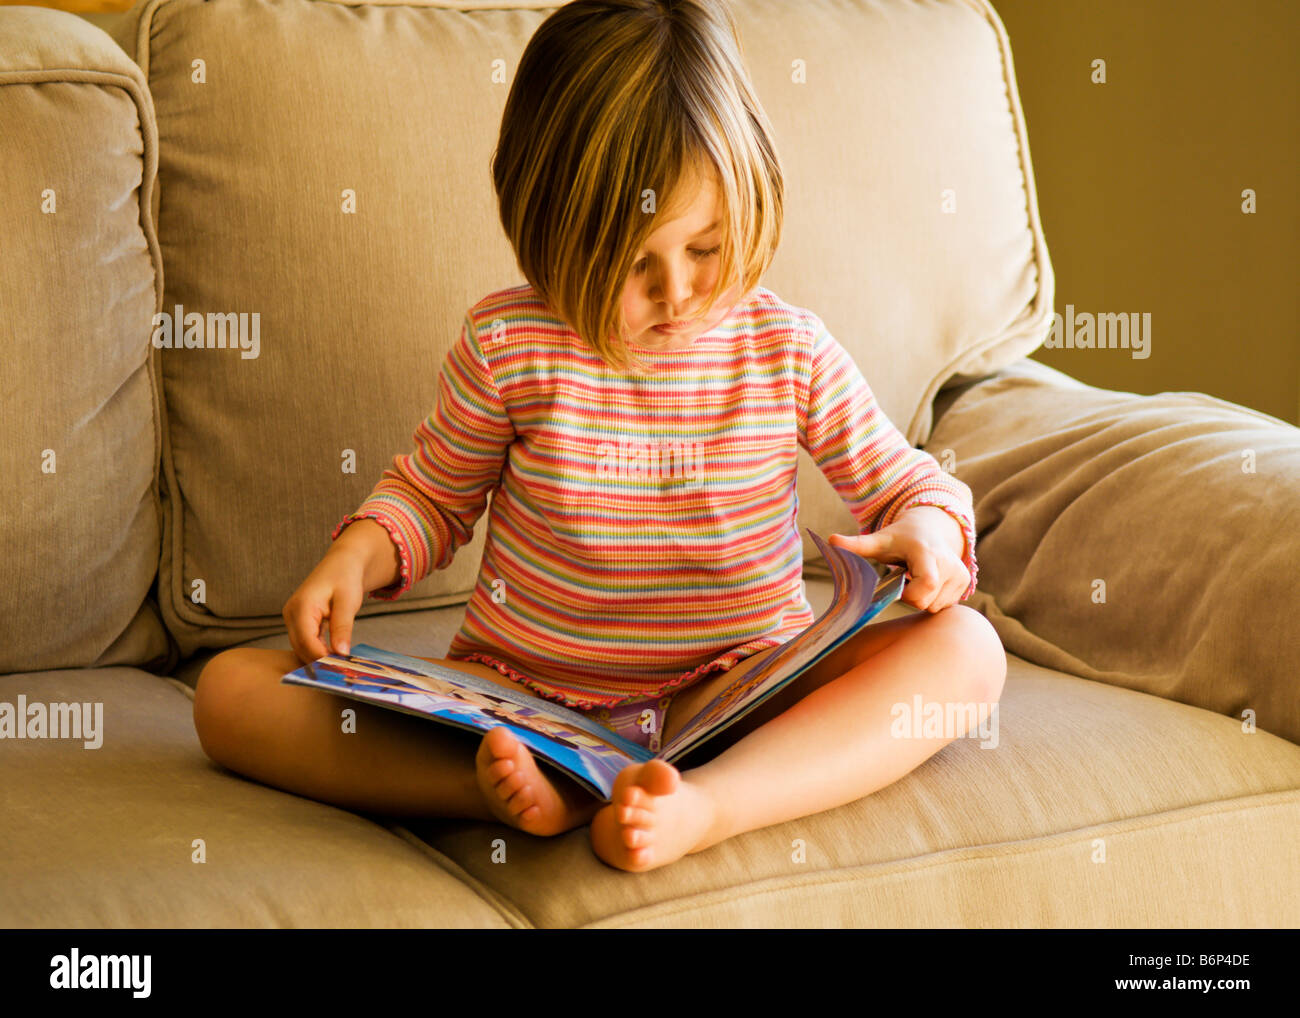 Girl, 3-5 years, sits on a cozy sofa reading a book. Stock Photo